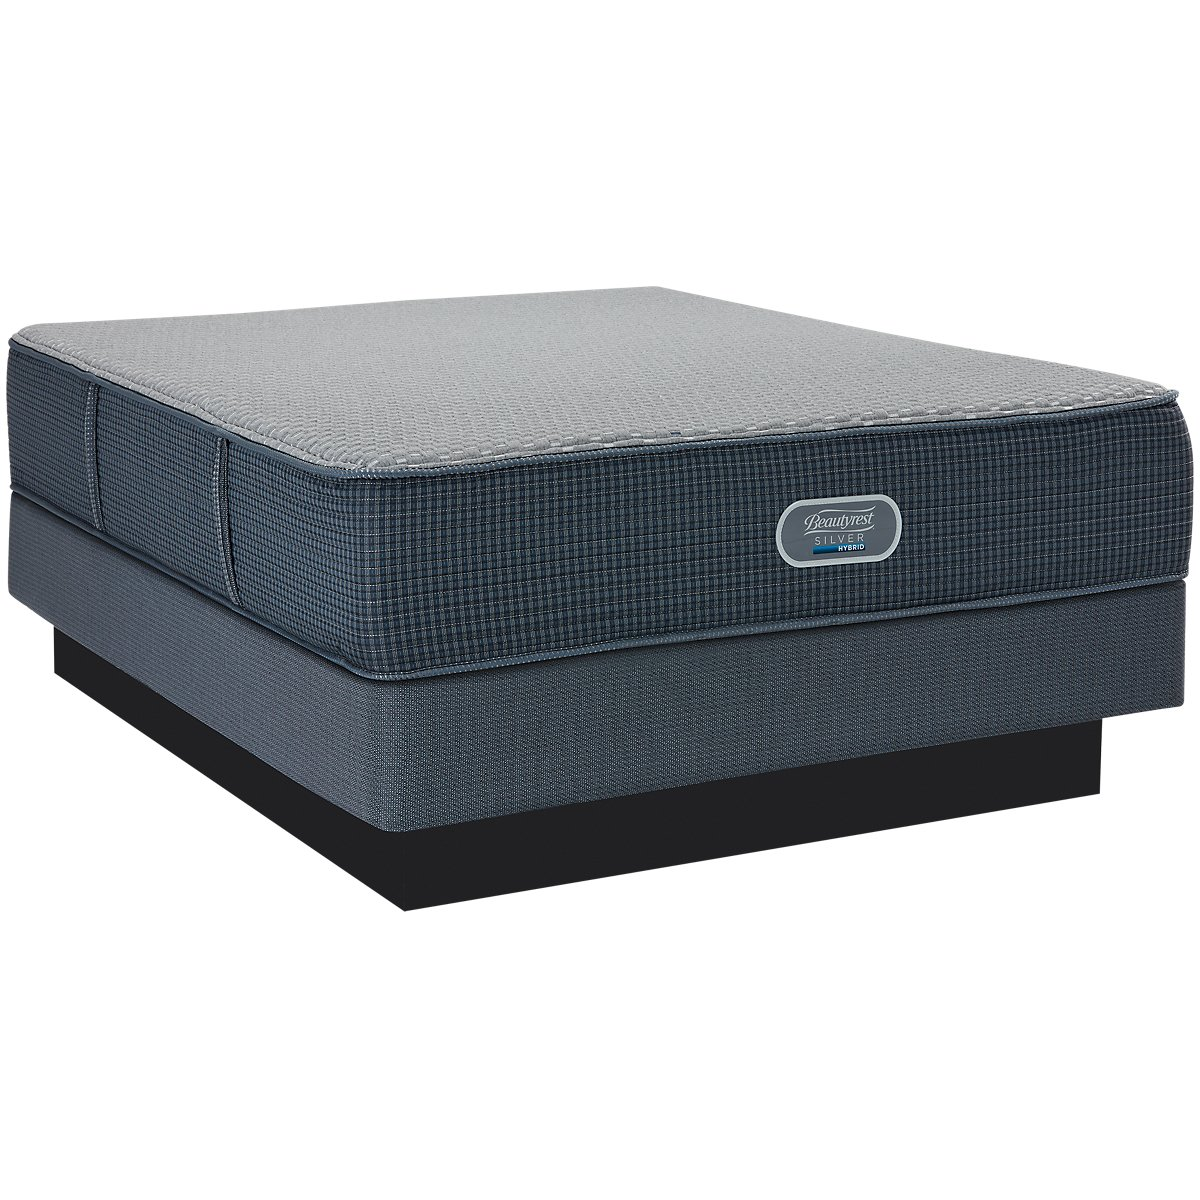 City Furniture Ventura Plush Hybrid Mattress Set